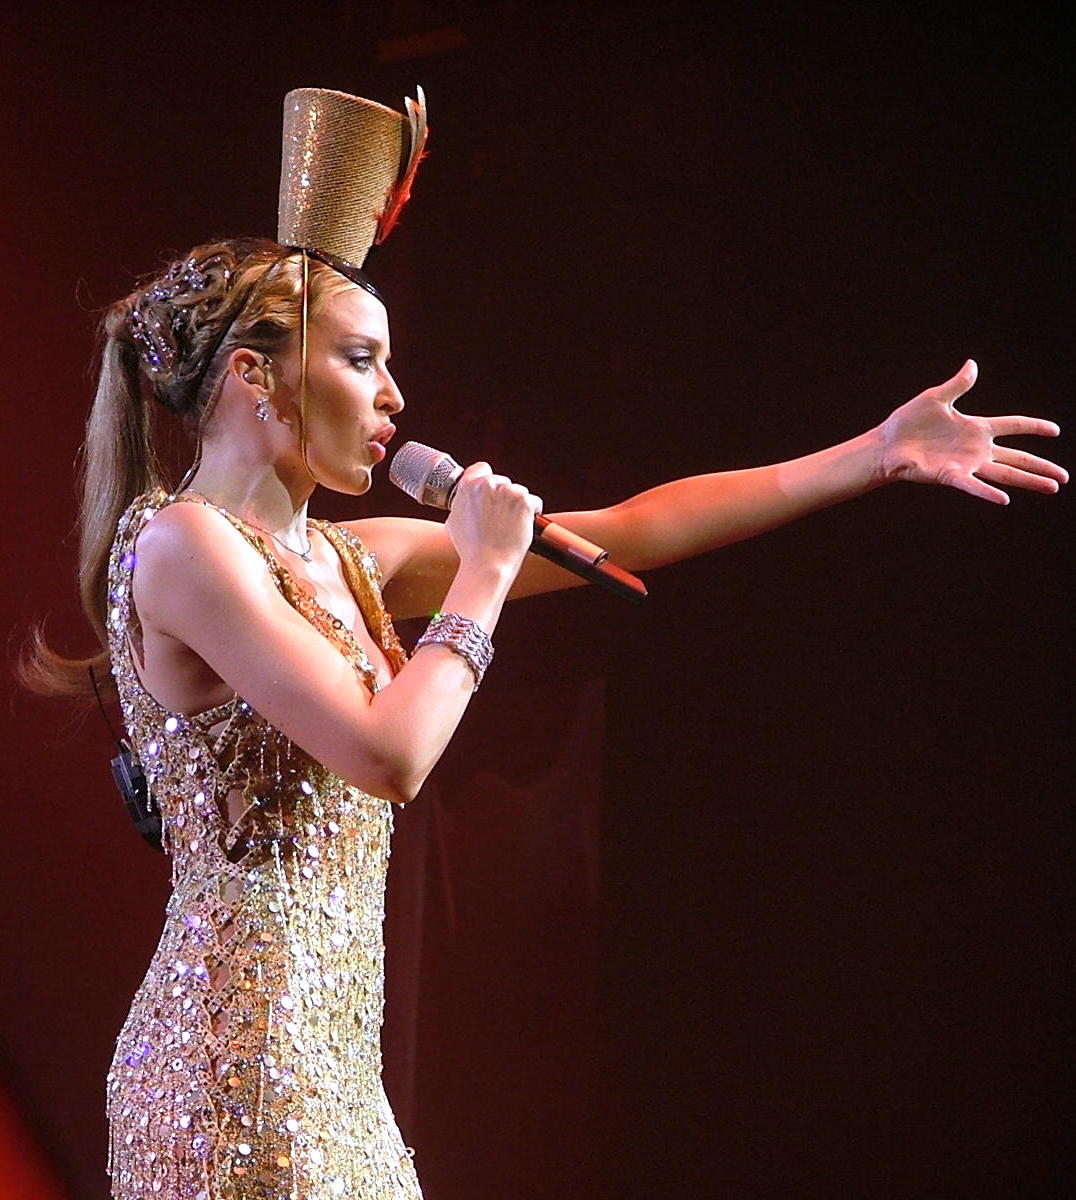 Kylie Minogue live in Paris - Your Disco Needs You - April 20th 2005